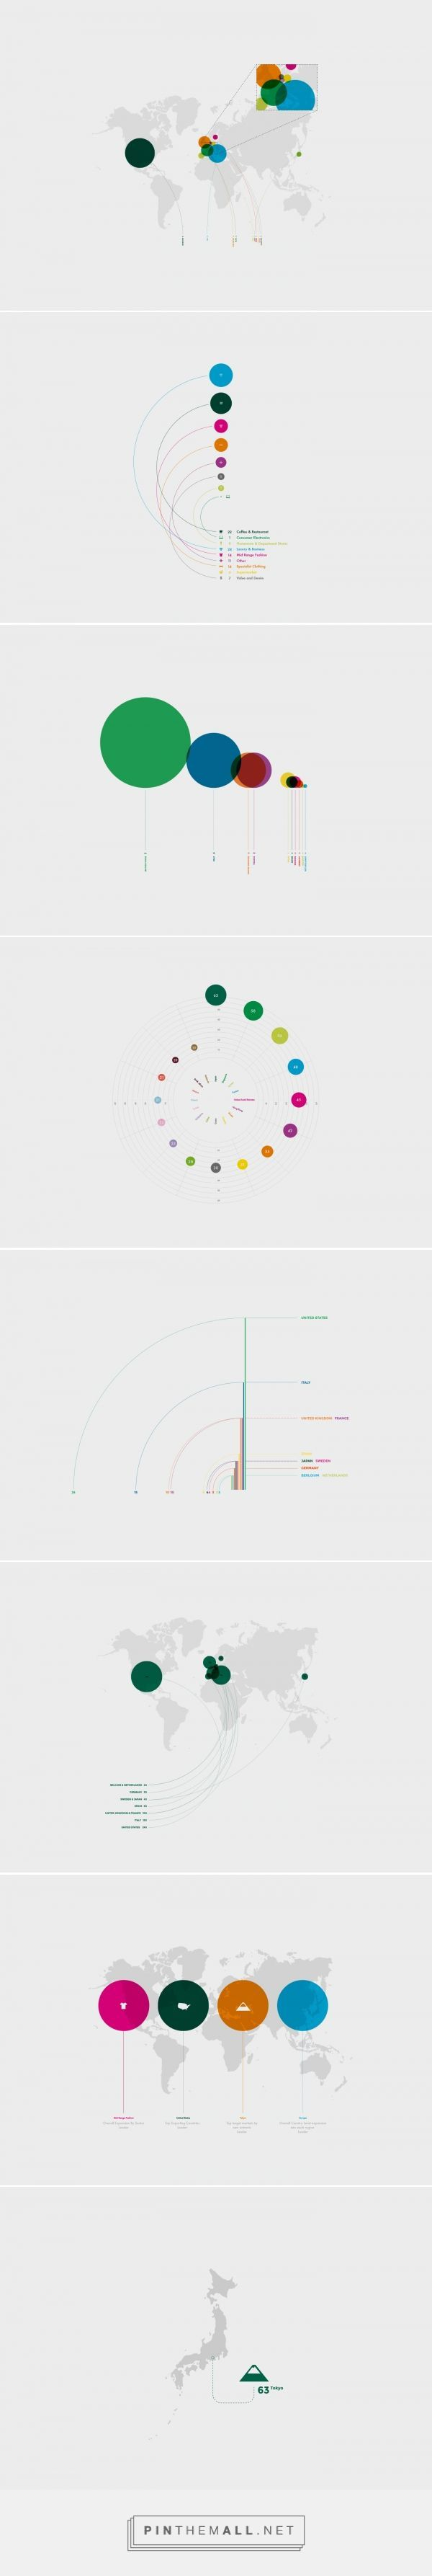 #Infographic #Behance... - a grouped images picture - Pin Them All